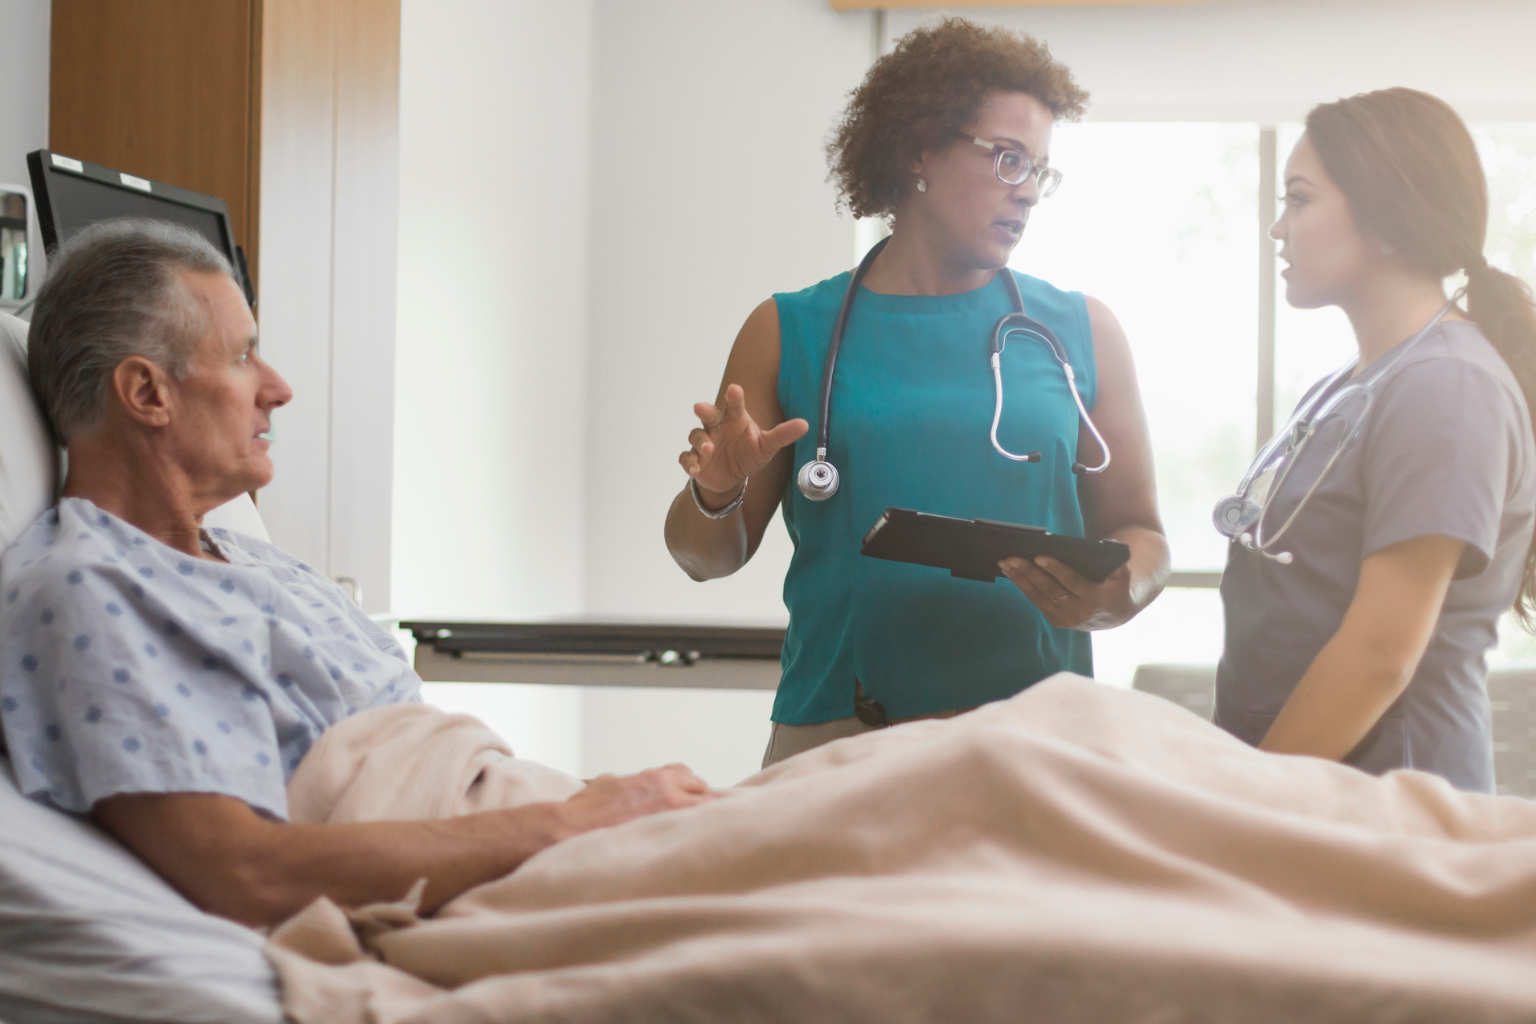 medical professionals confer with patient